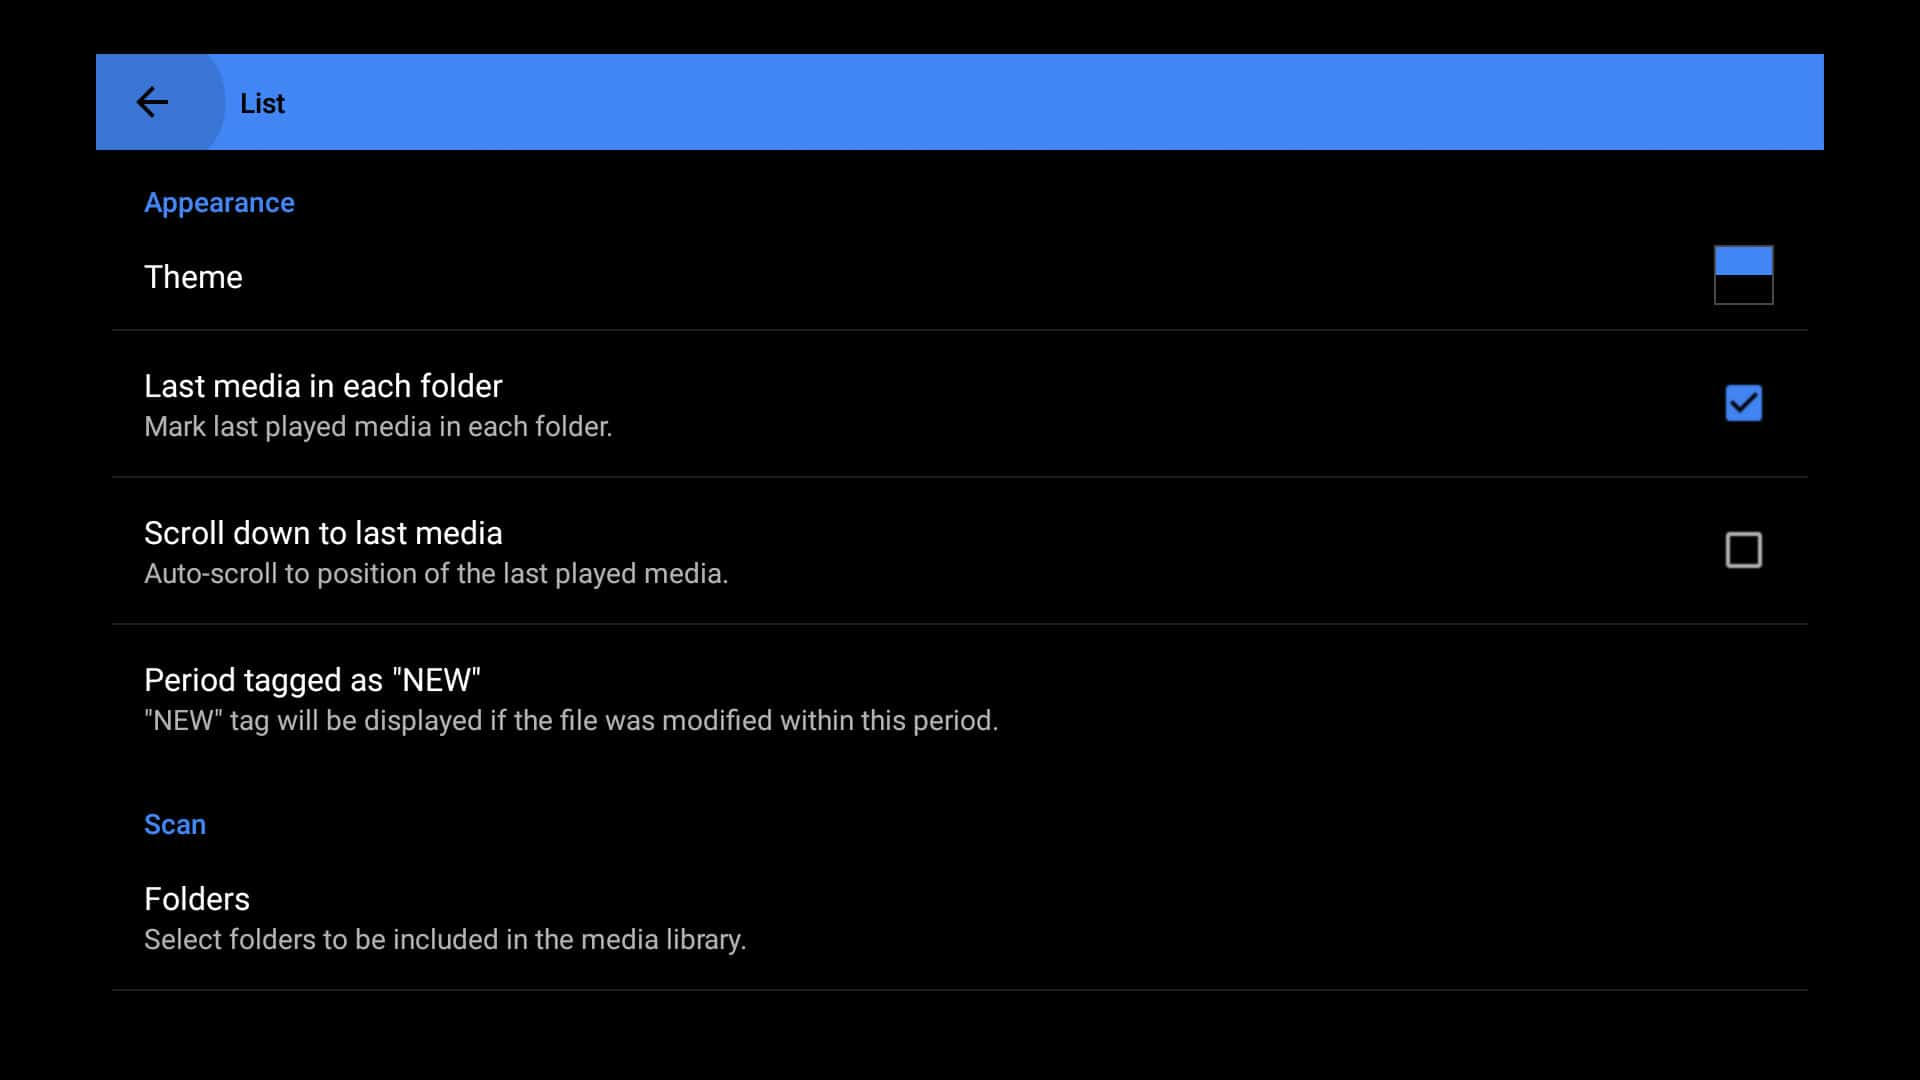 MX Player settings menu